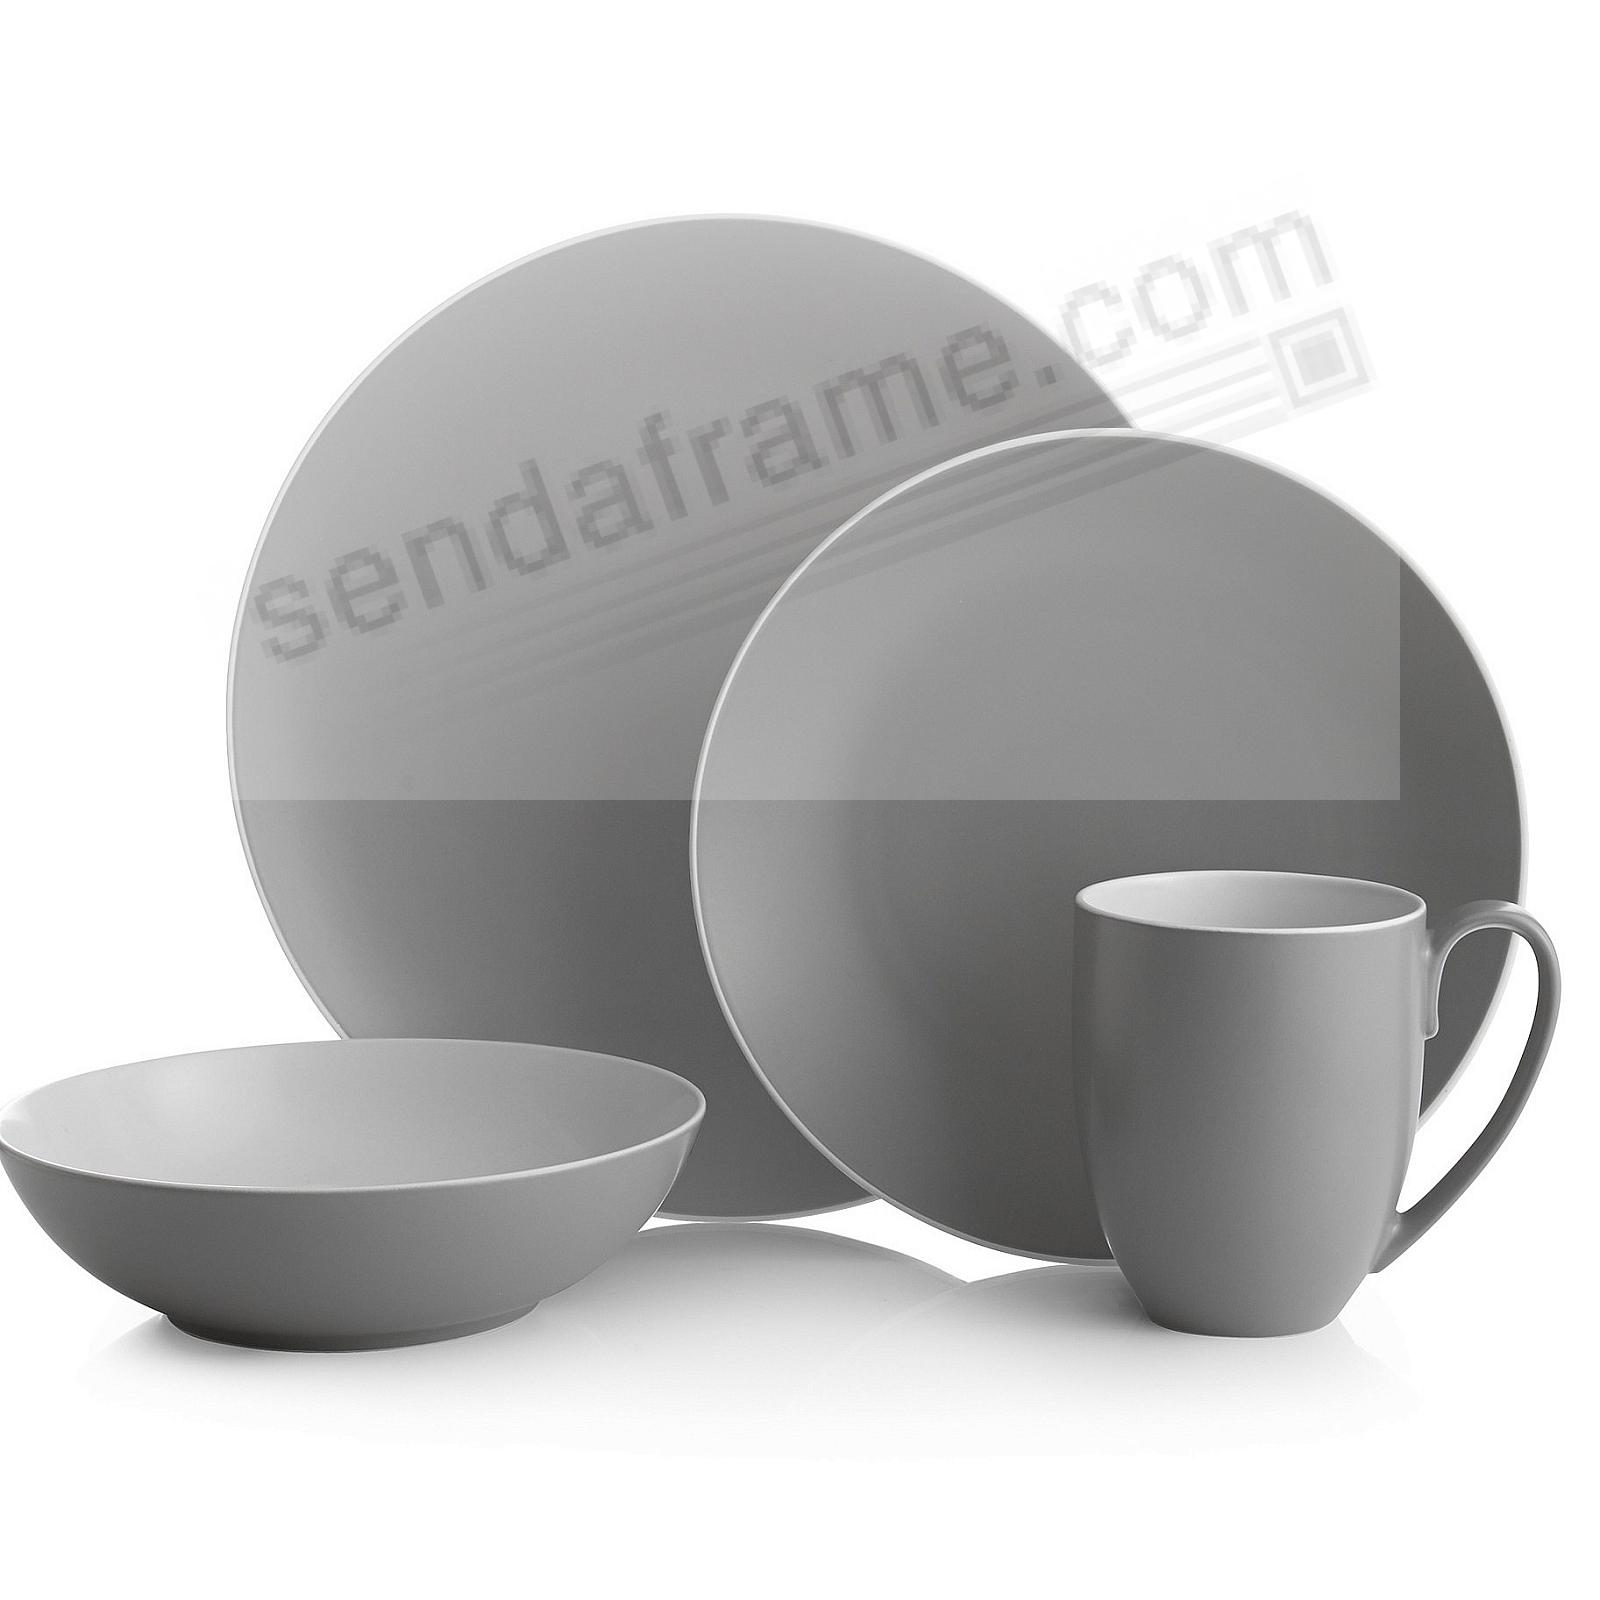 POP 4PC Place Setting SLATE-GREY by Nambe®